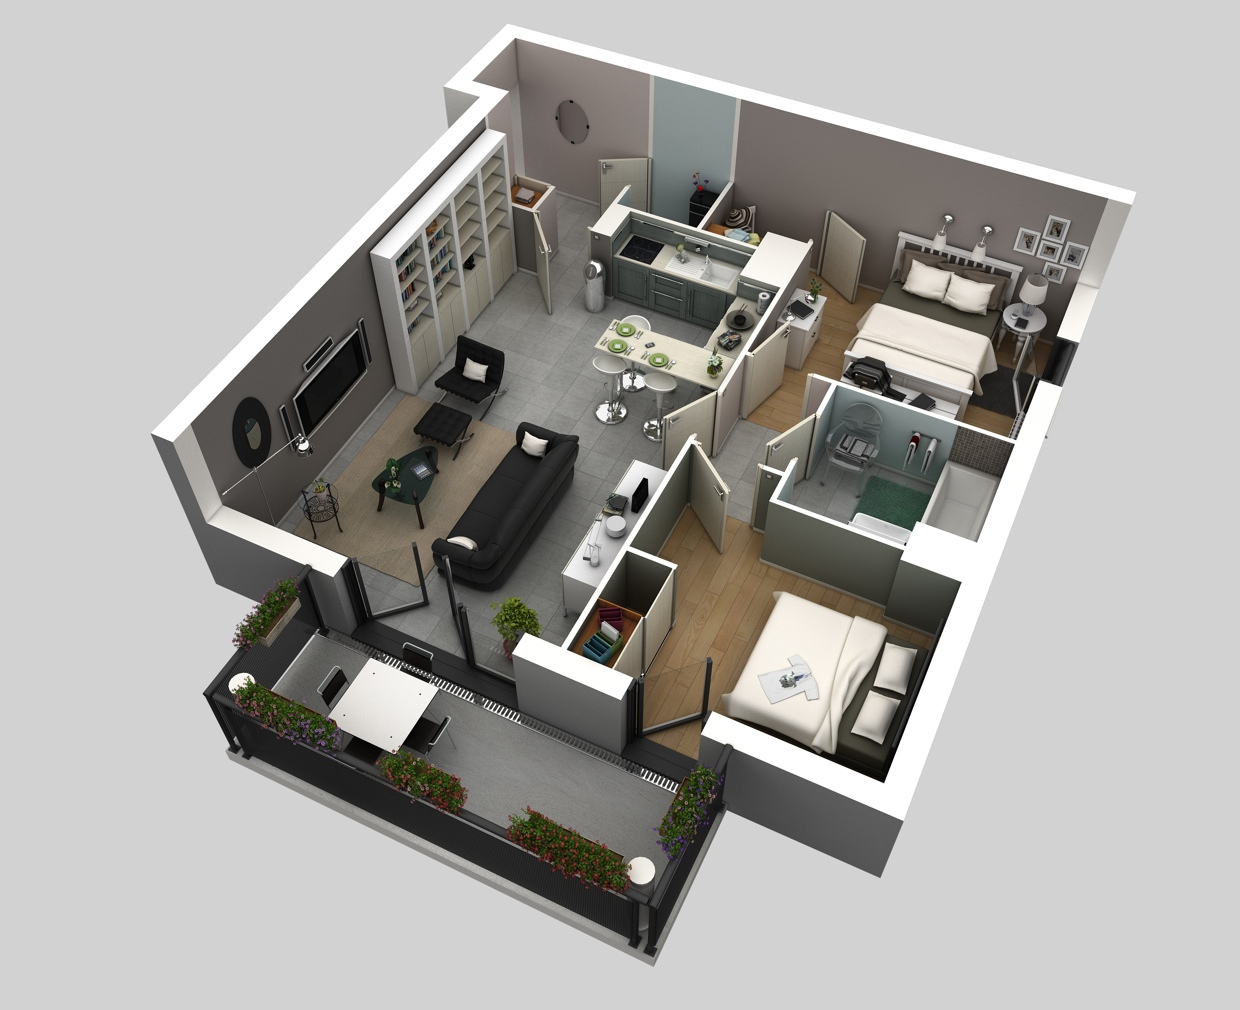 50 3D FLOOR PLANS LAYOUT DESIGNS FOR 2 BEDROOM HOUSE OR APARTMENT  simplicity and abstraction